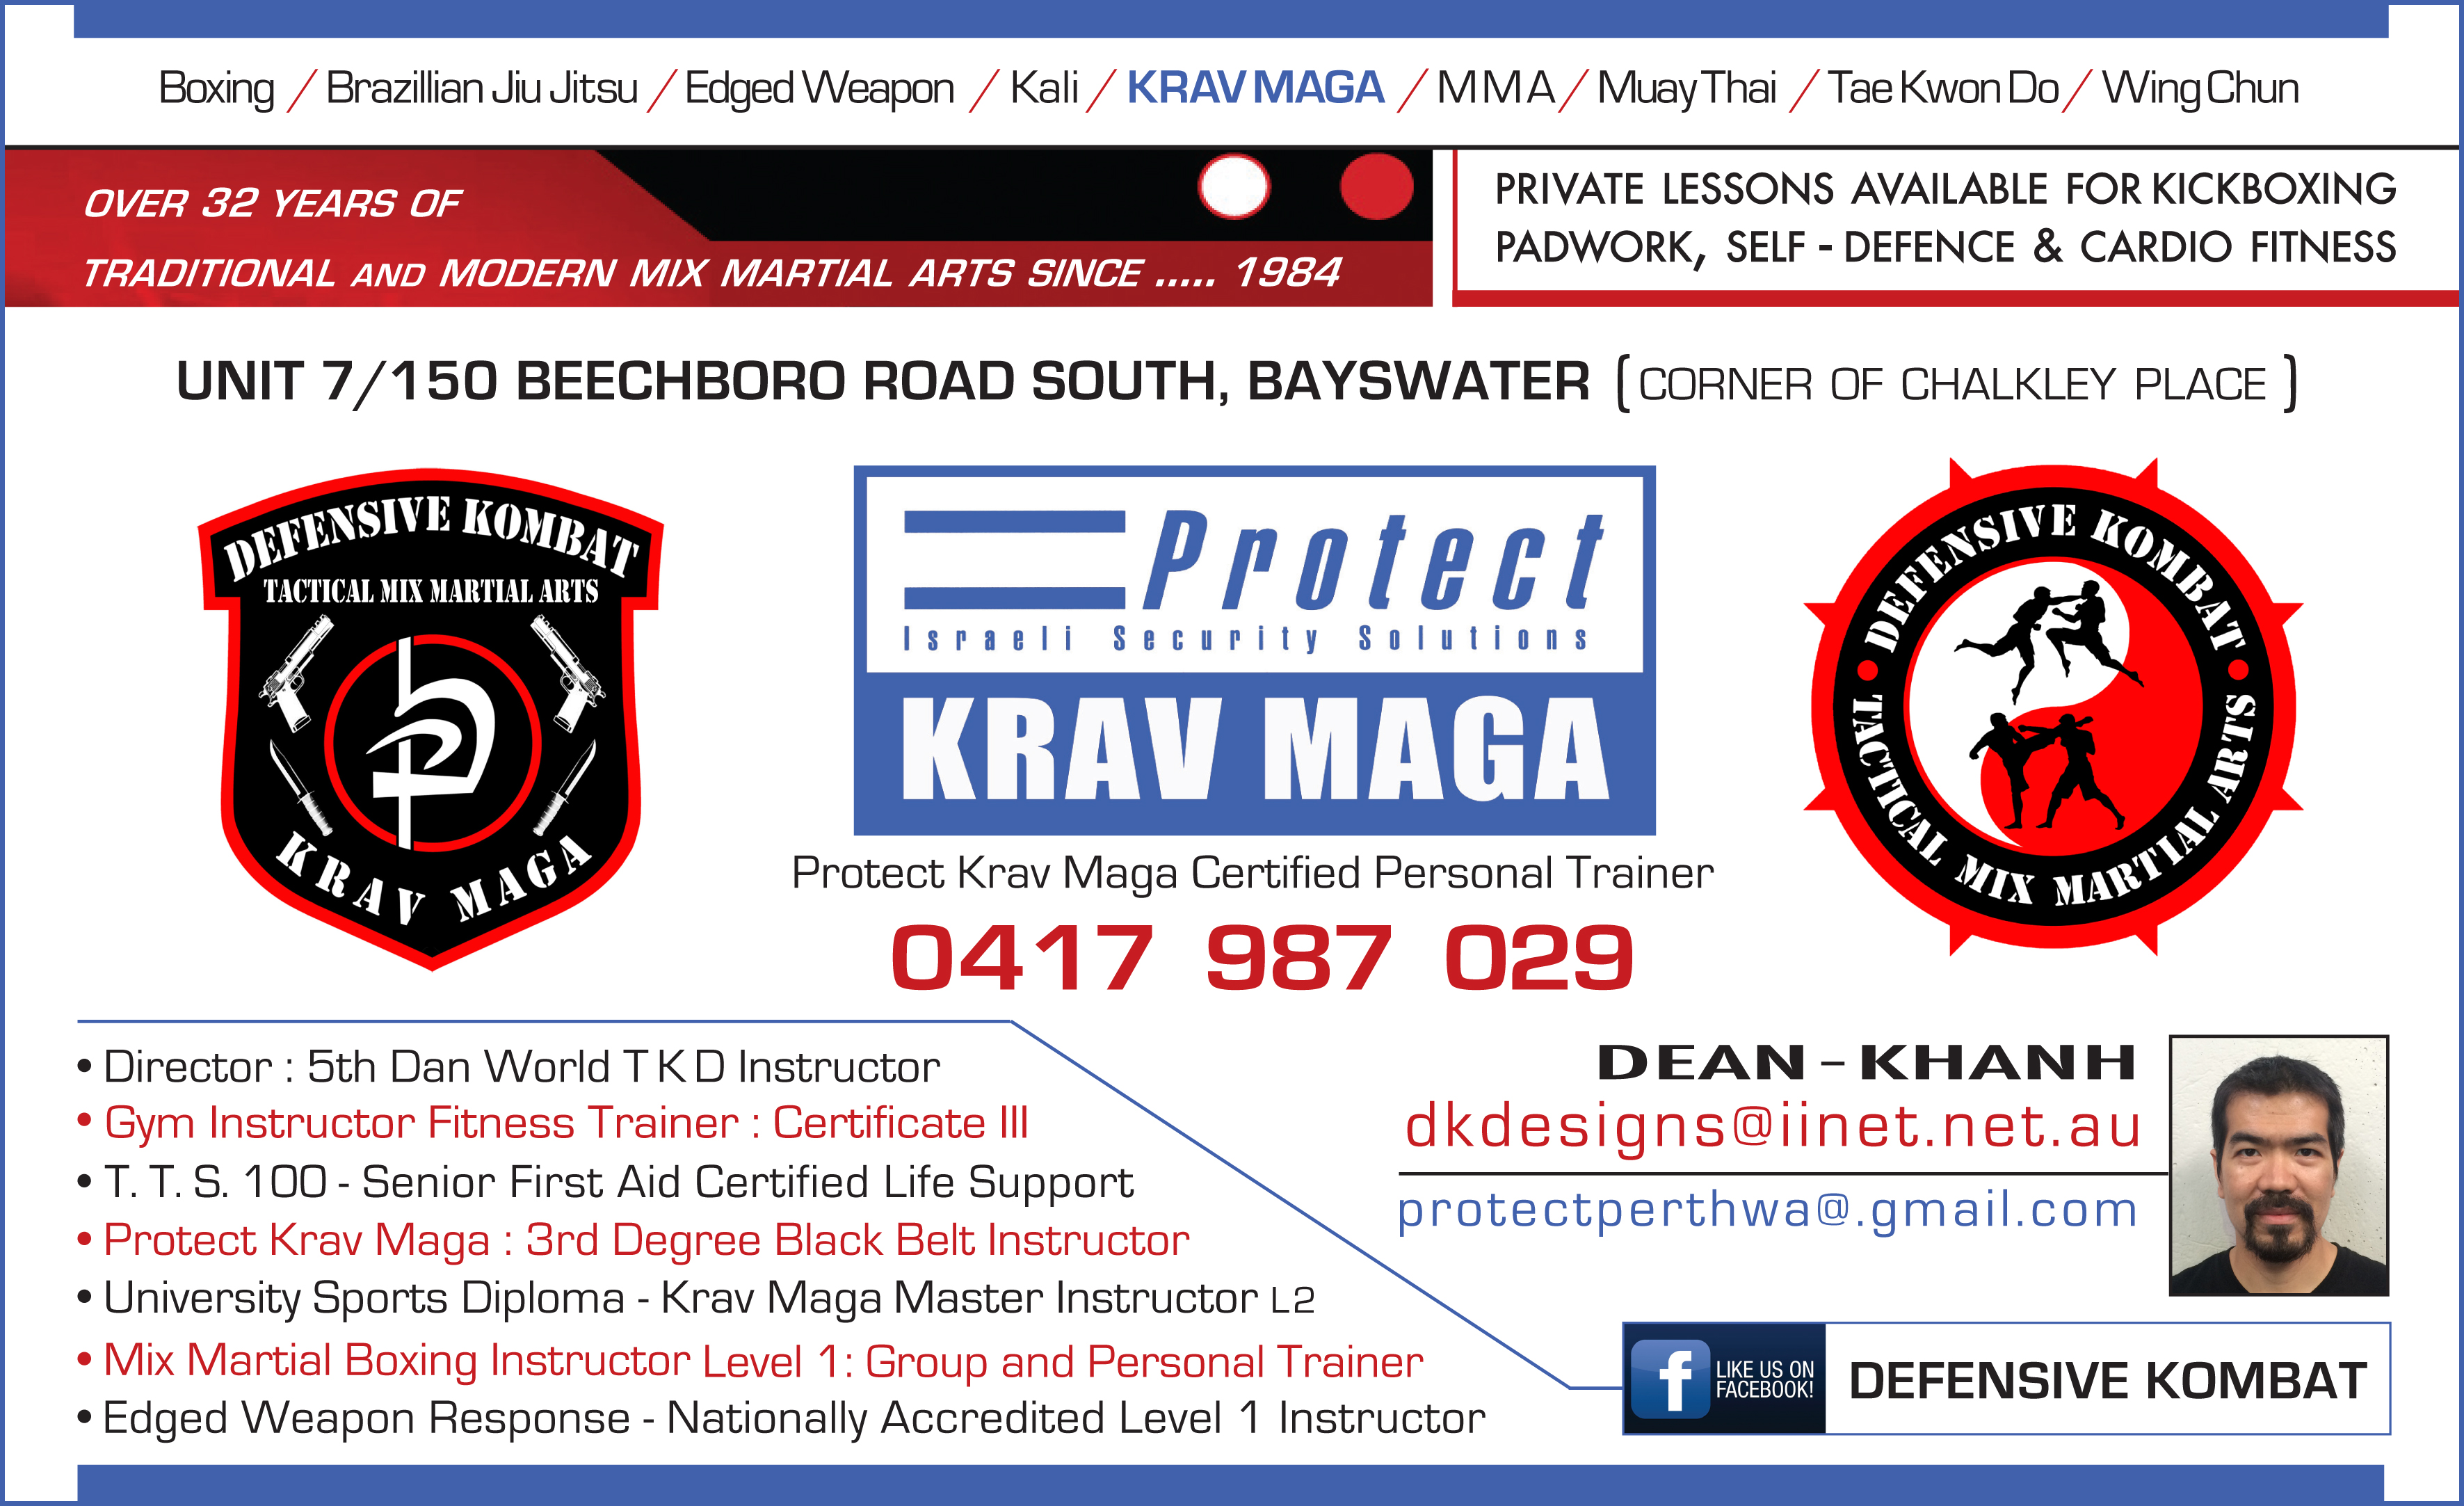 Defensive Kombat Krav Maga Business Card